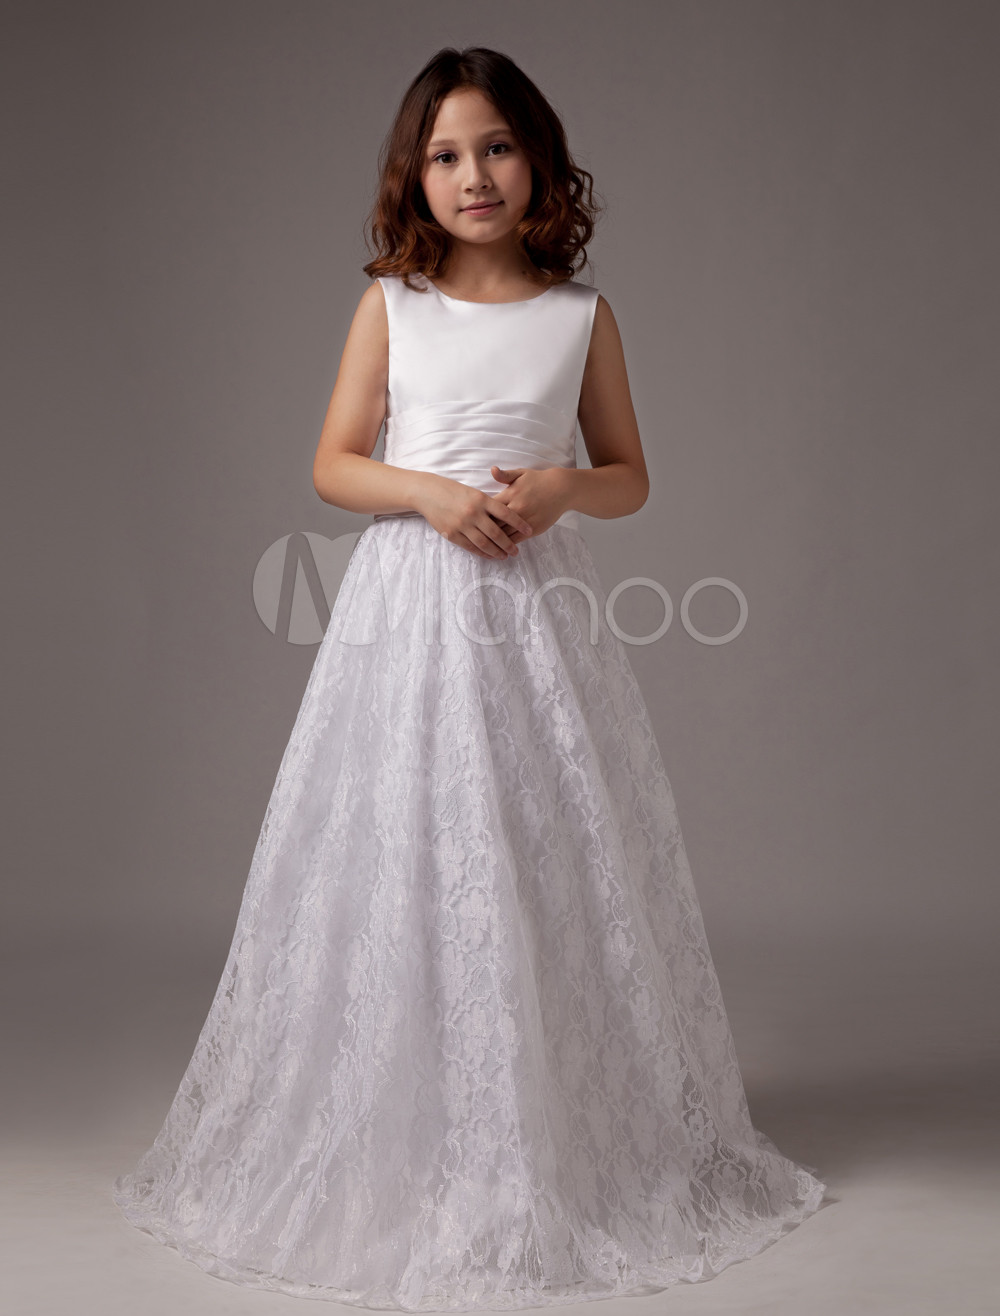 Long Flower Girls Dresses For Wedding Gowns Ankle-Length Mother Daughter Dresses Lace Glitz Pageant Dresses for Little Girls long flower girls dresses for wedding gowns ankle length kids prom dresses lace glitz pageant dresses for little girls